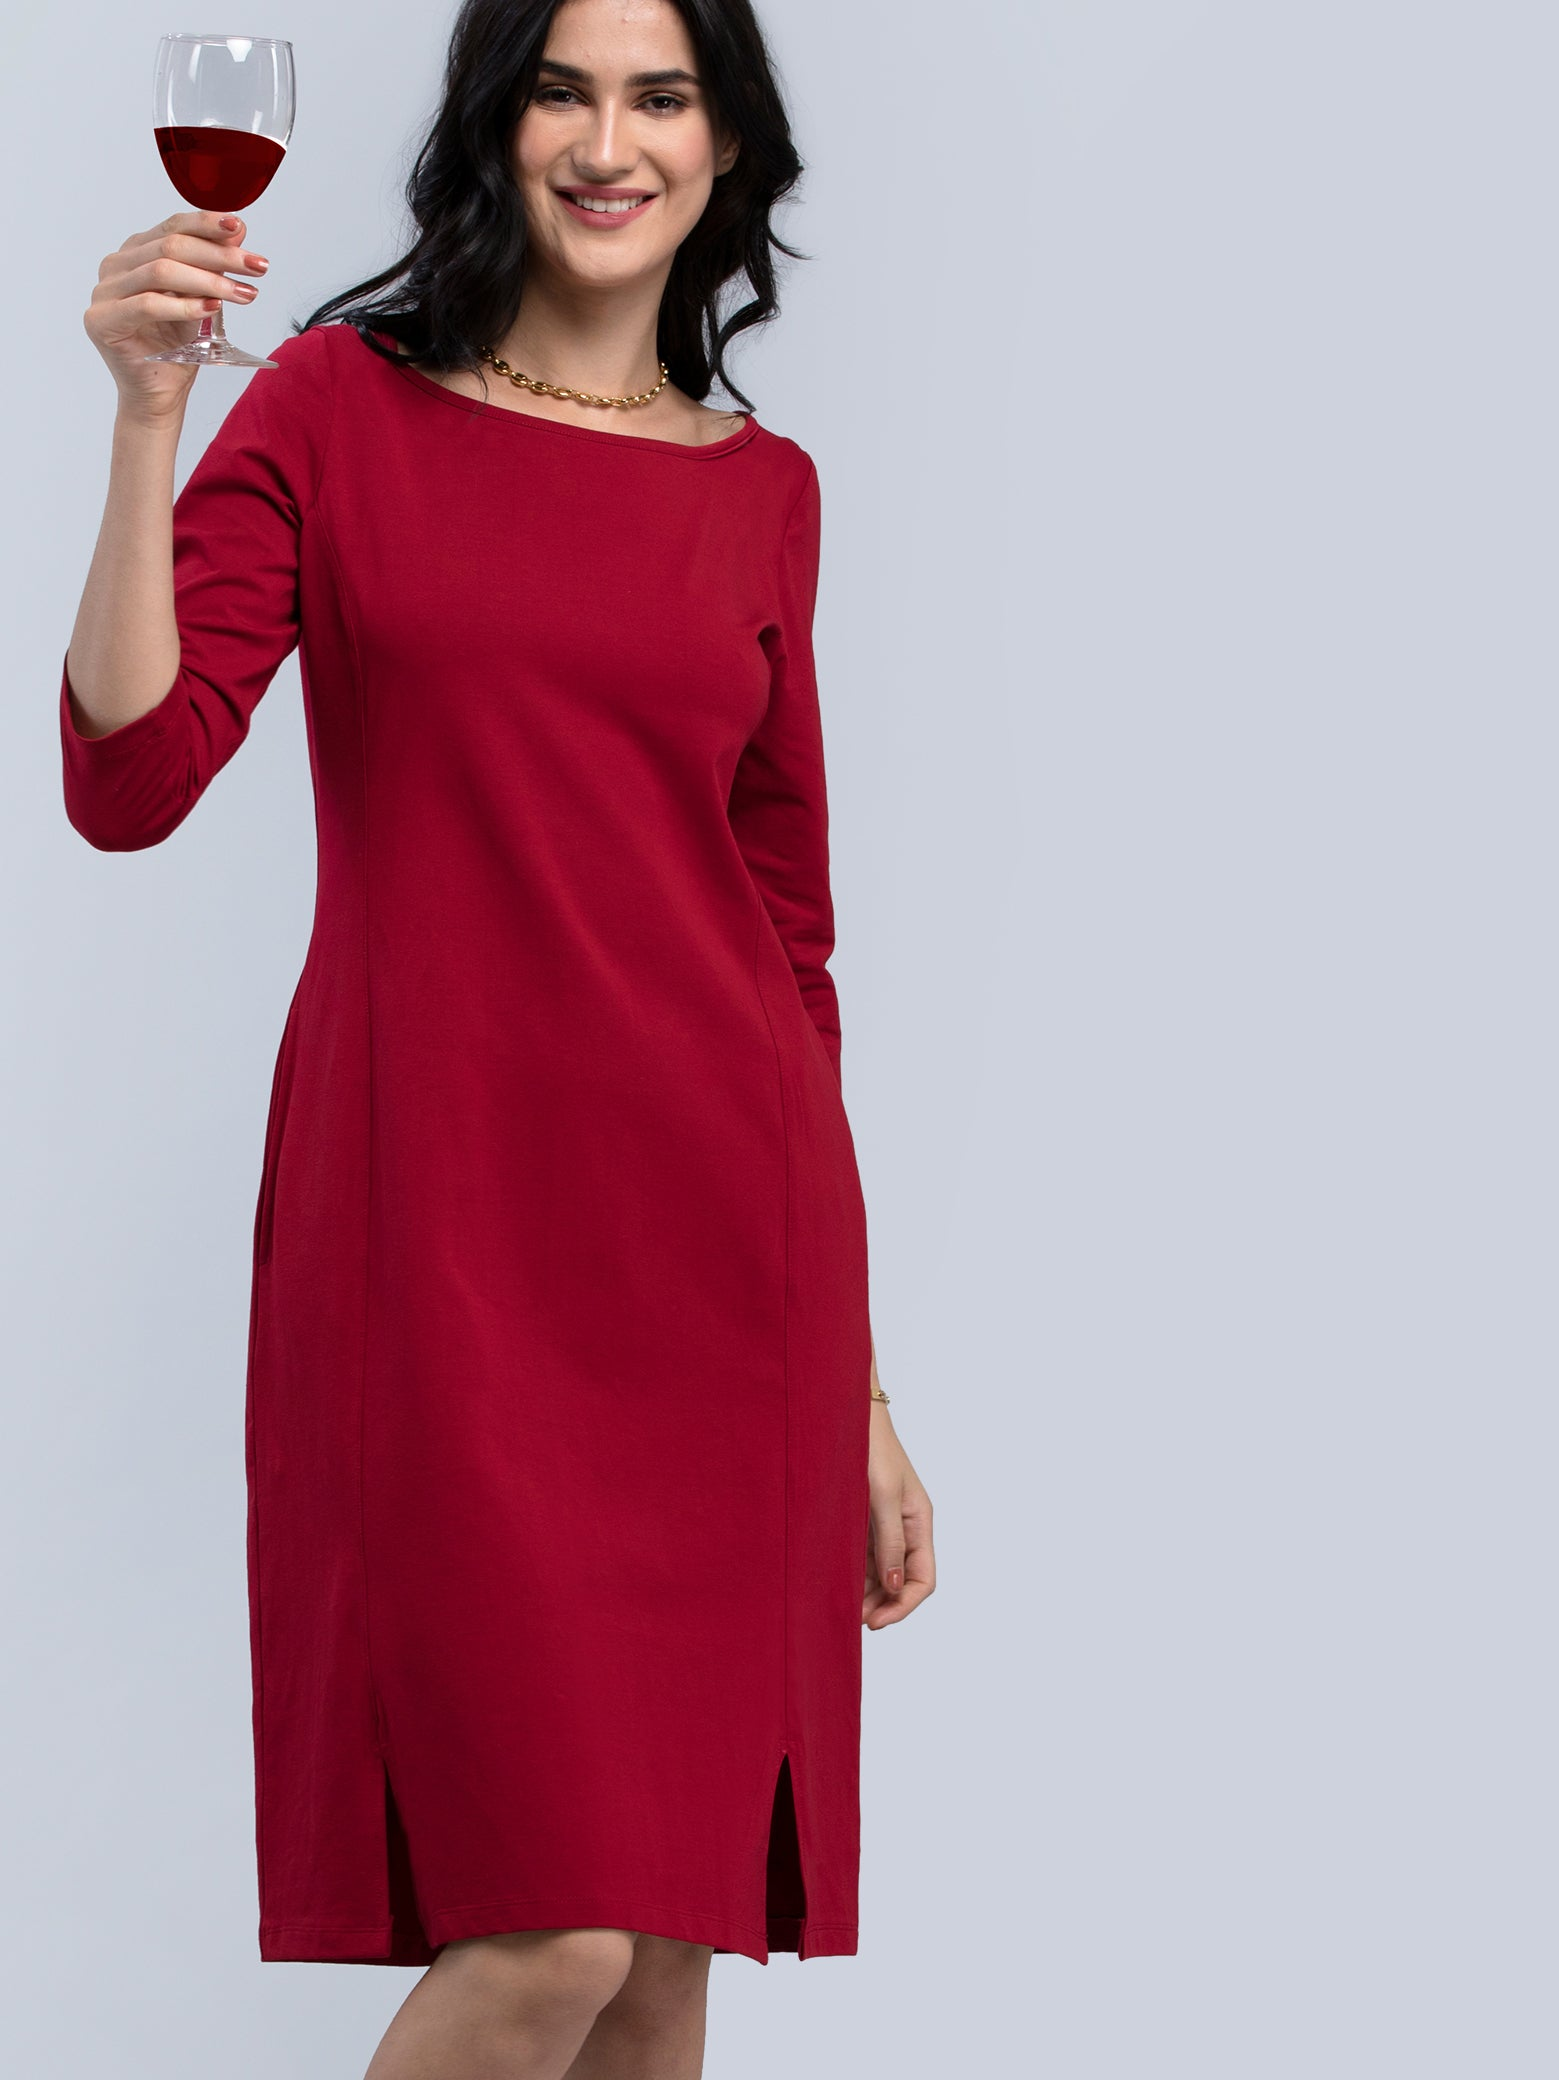 Cotton Boat Neck Knitted A Line Dress - Maroon